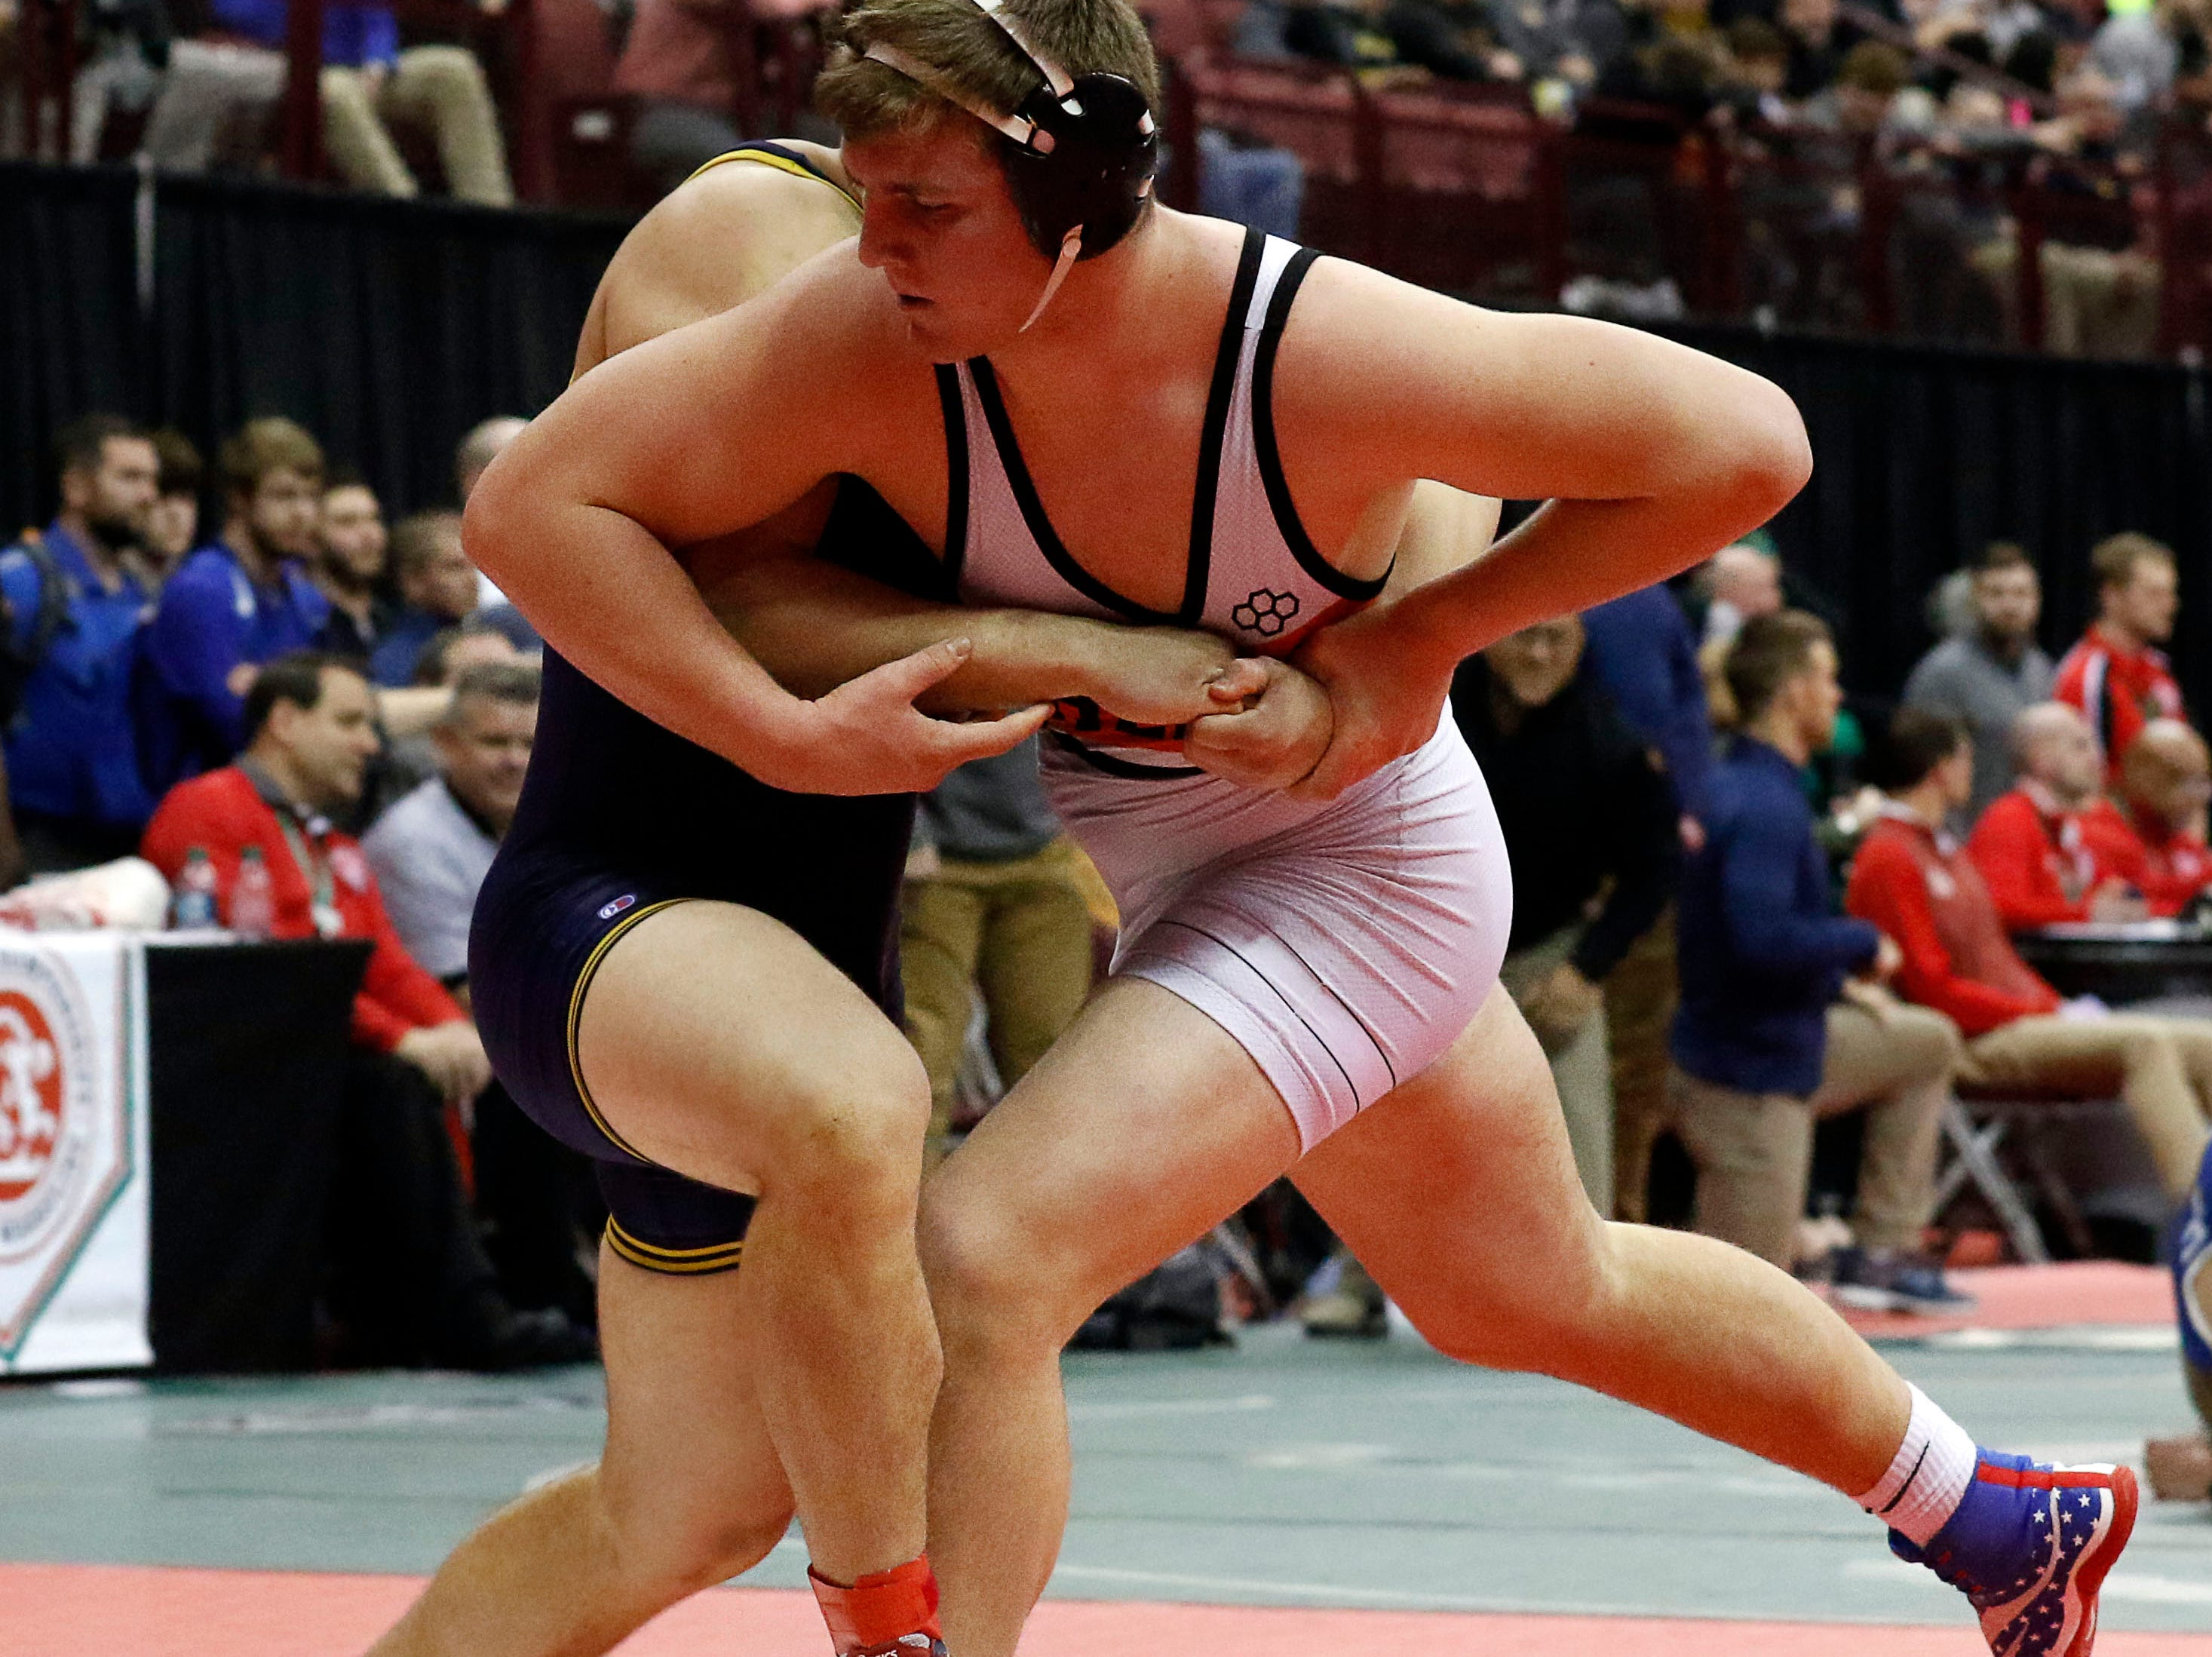 Ashland's Josh Bever wrestles during the State Wrestling Tournament Thursday, March 7, 2019, at the Jerome Schottenstein Center at Ohio State University in Columbus.